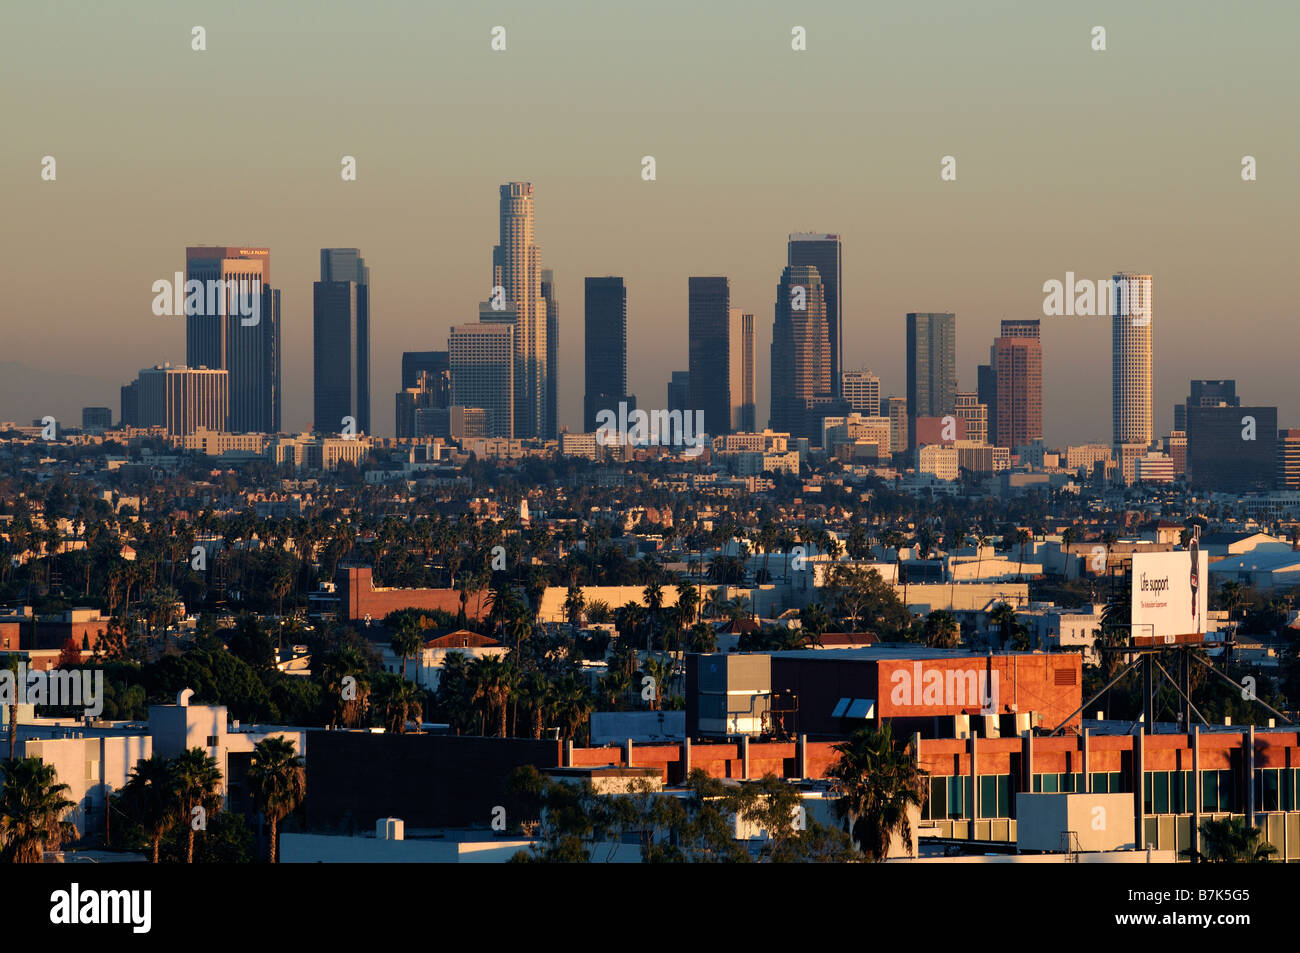 dusk sunset glow downtown los angeles city business district skyline Stock Photo